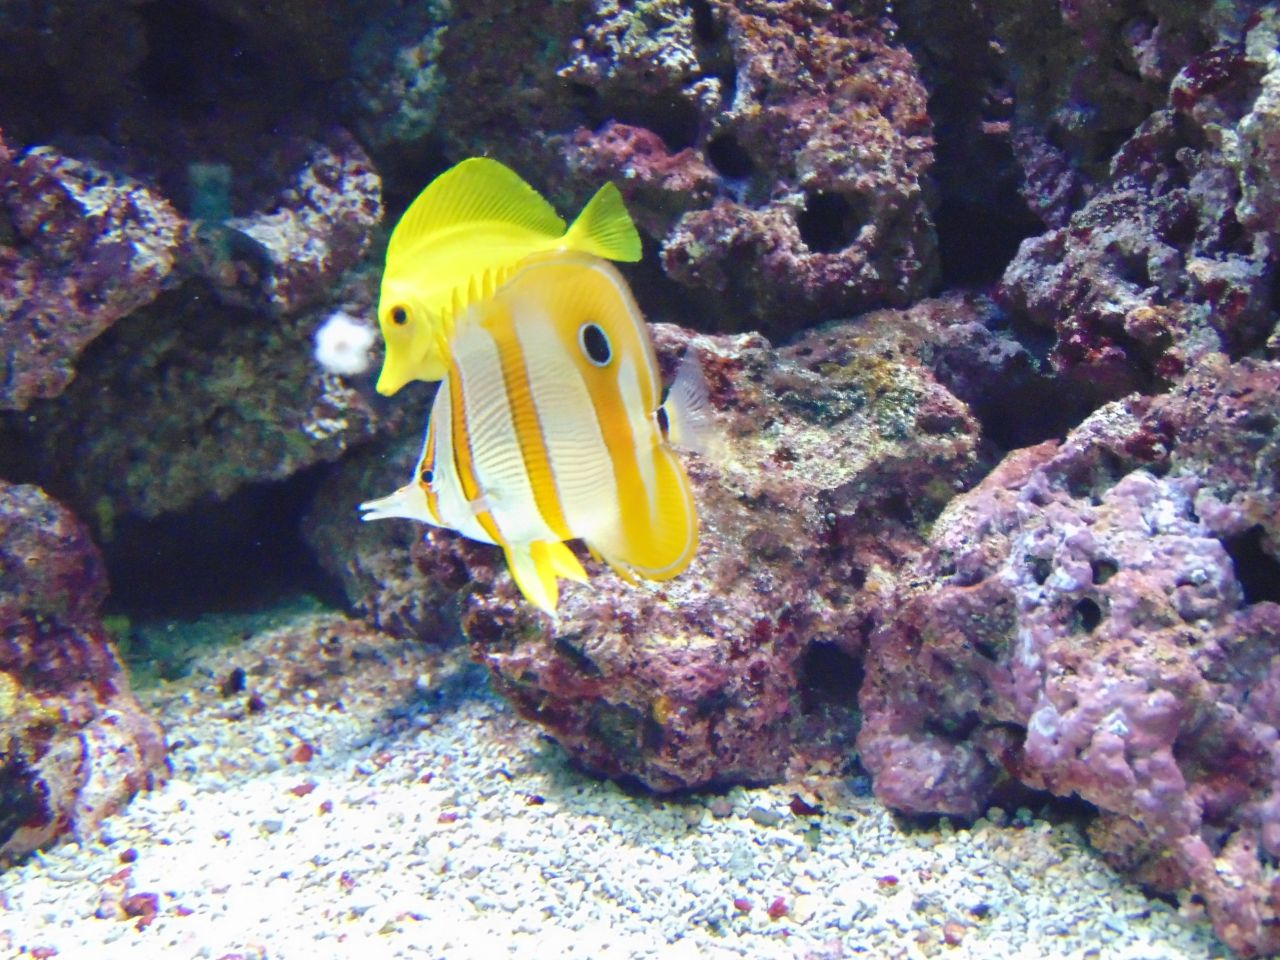 Two yellow fish swimming next to a coral reef.